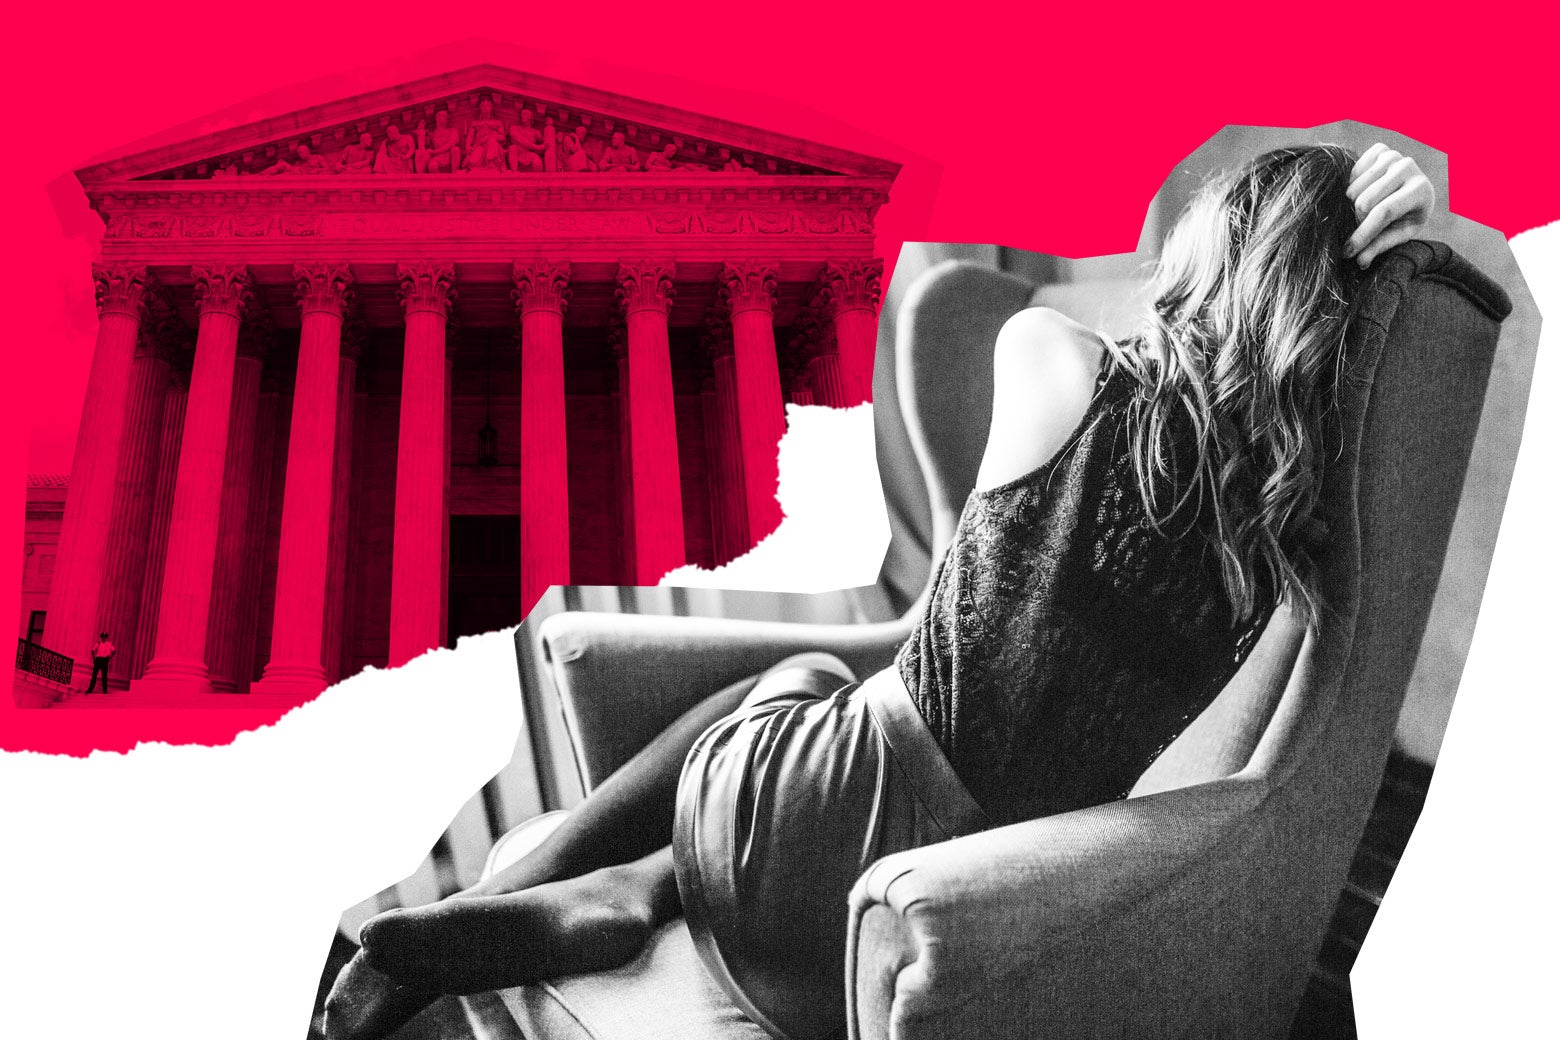 A woman curled up in an armchair, with the Supreme Court building in the background.